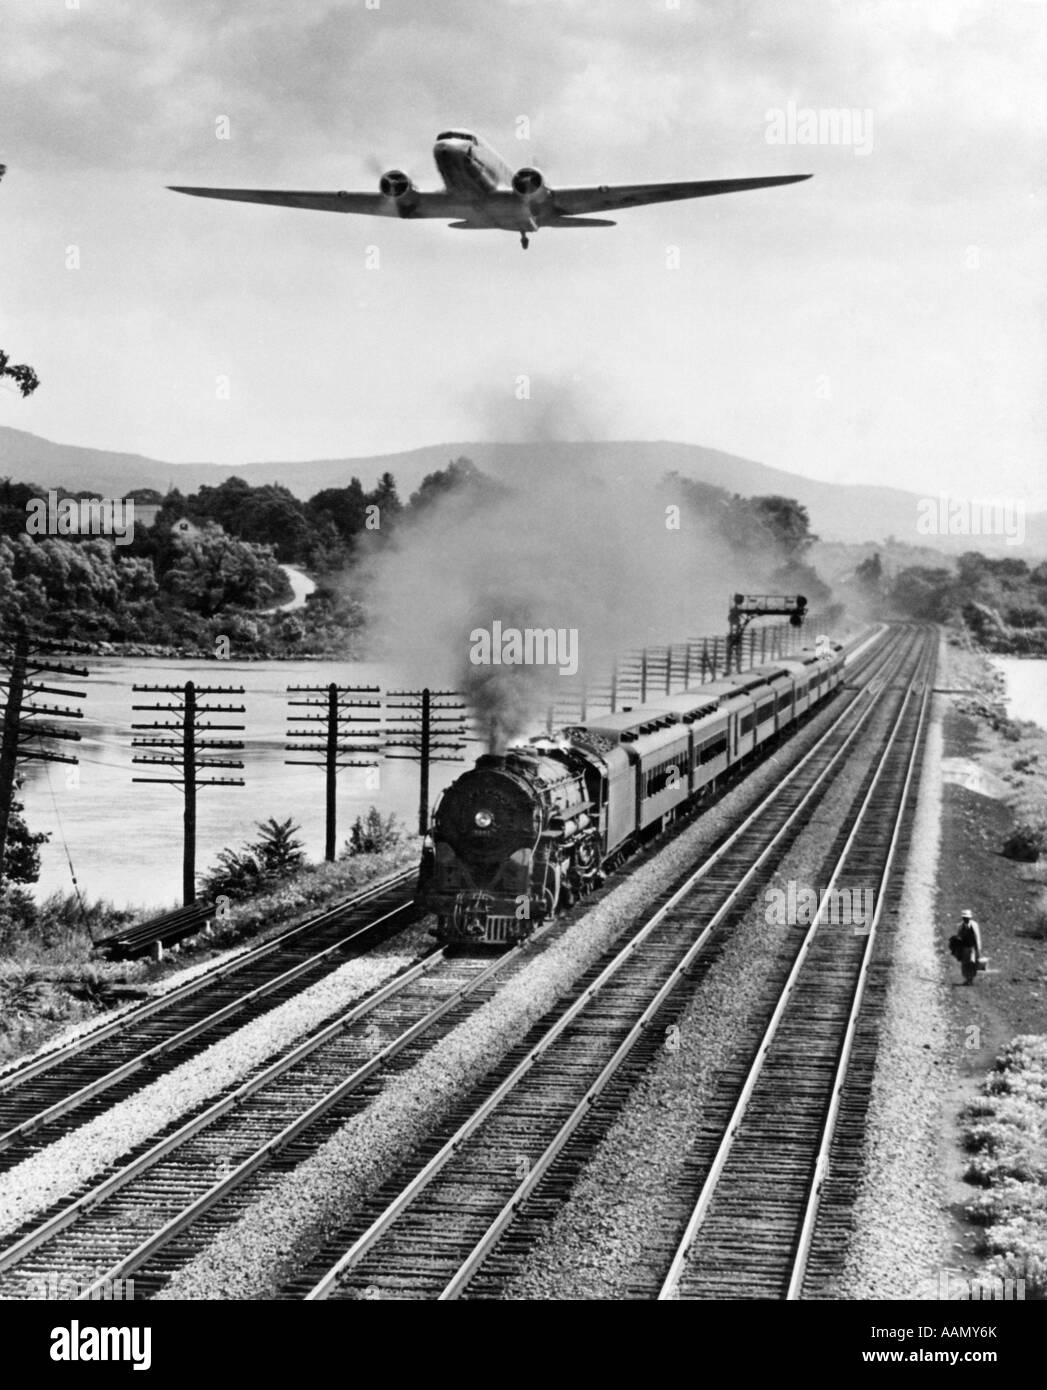 1930s 1940s THREE FORMS OF TRANSPORTATION MAN WALKING BY TRAIN TRACKS 4MPH LOCOMOTIVE 40MPH AIRPLANE ABOVE 200MPH - Stock Image